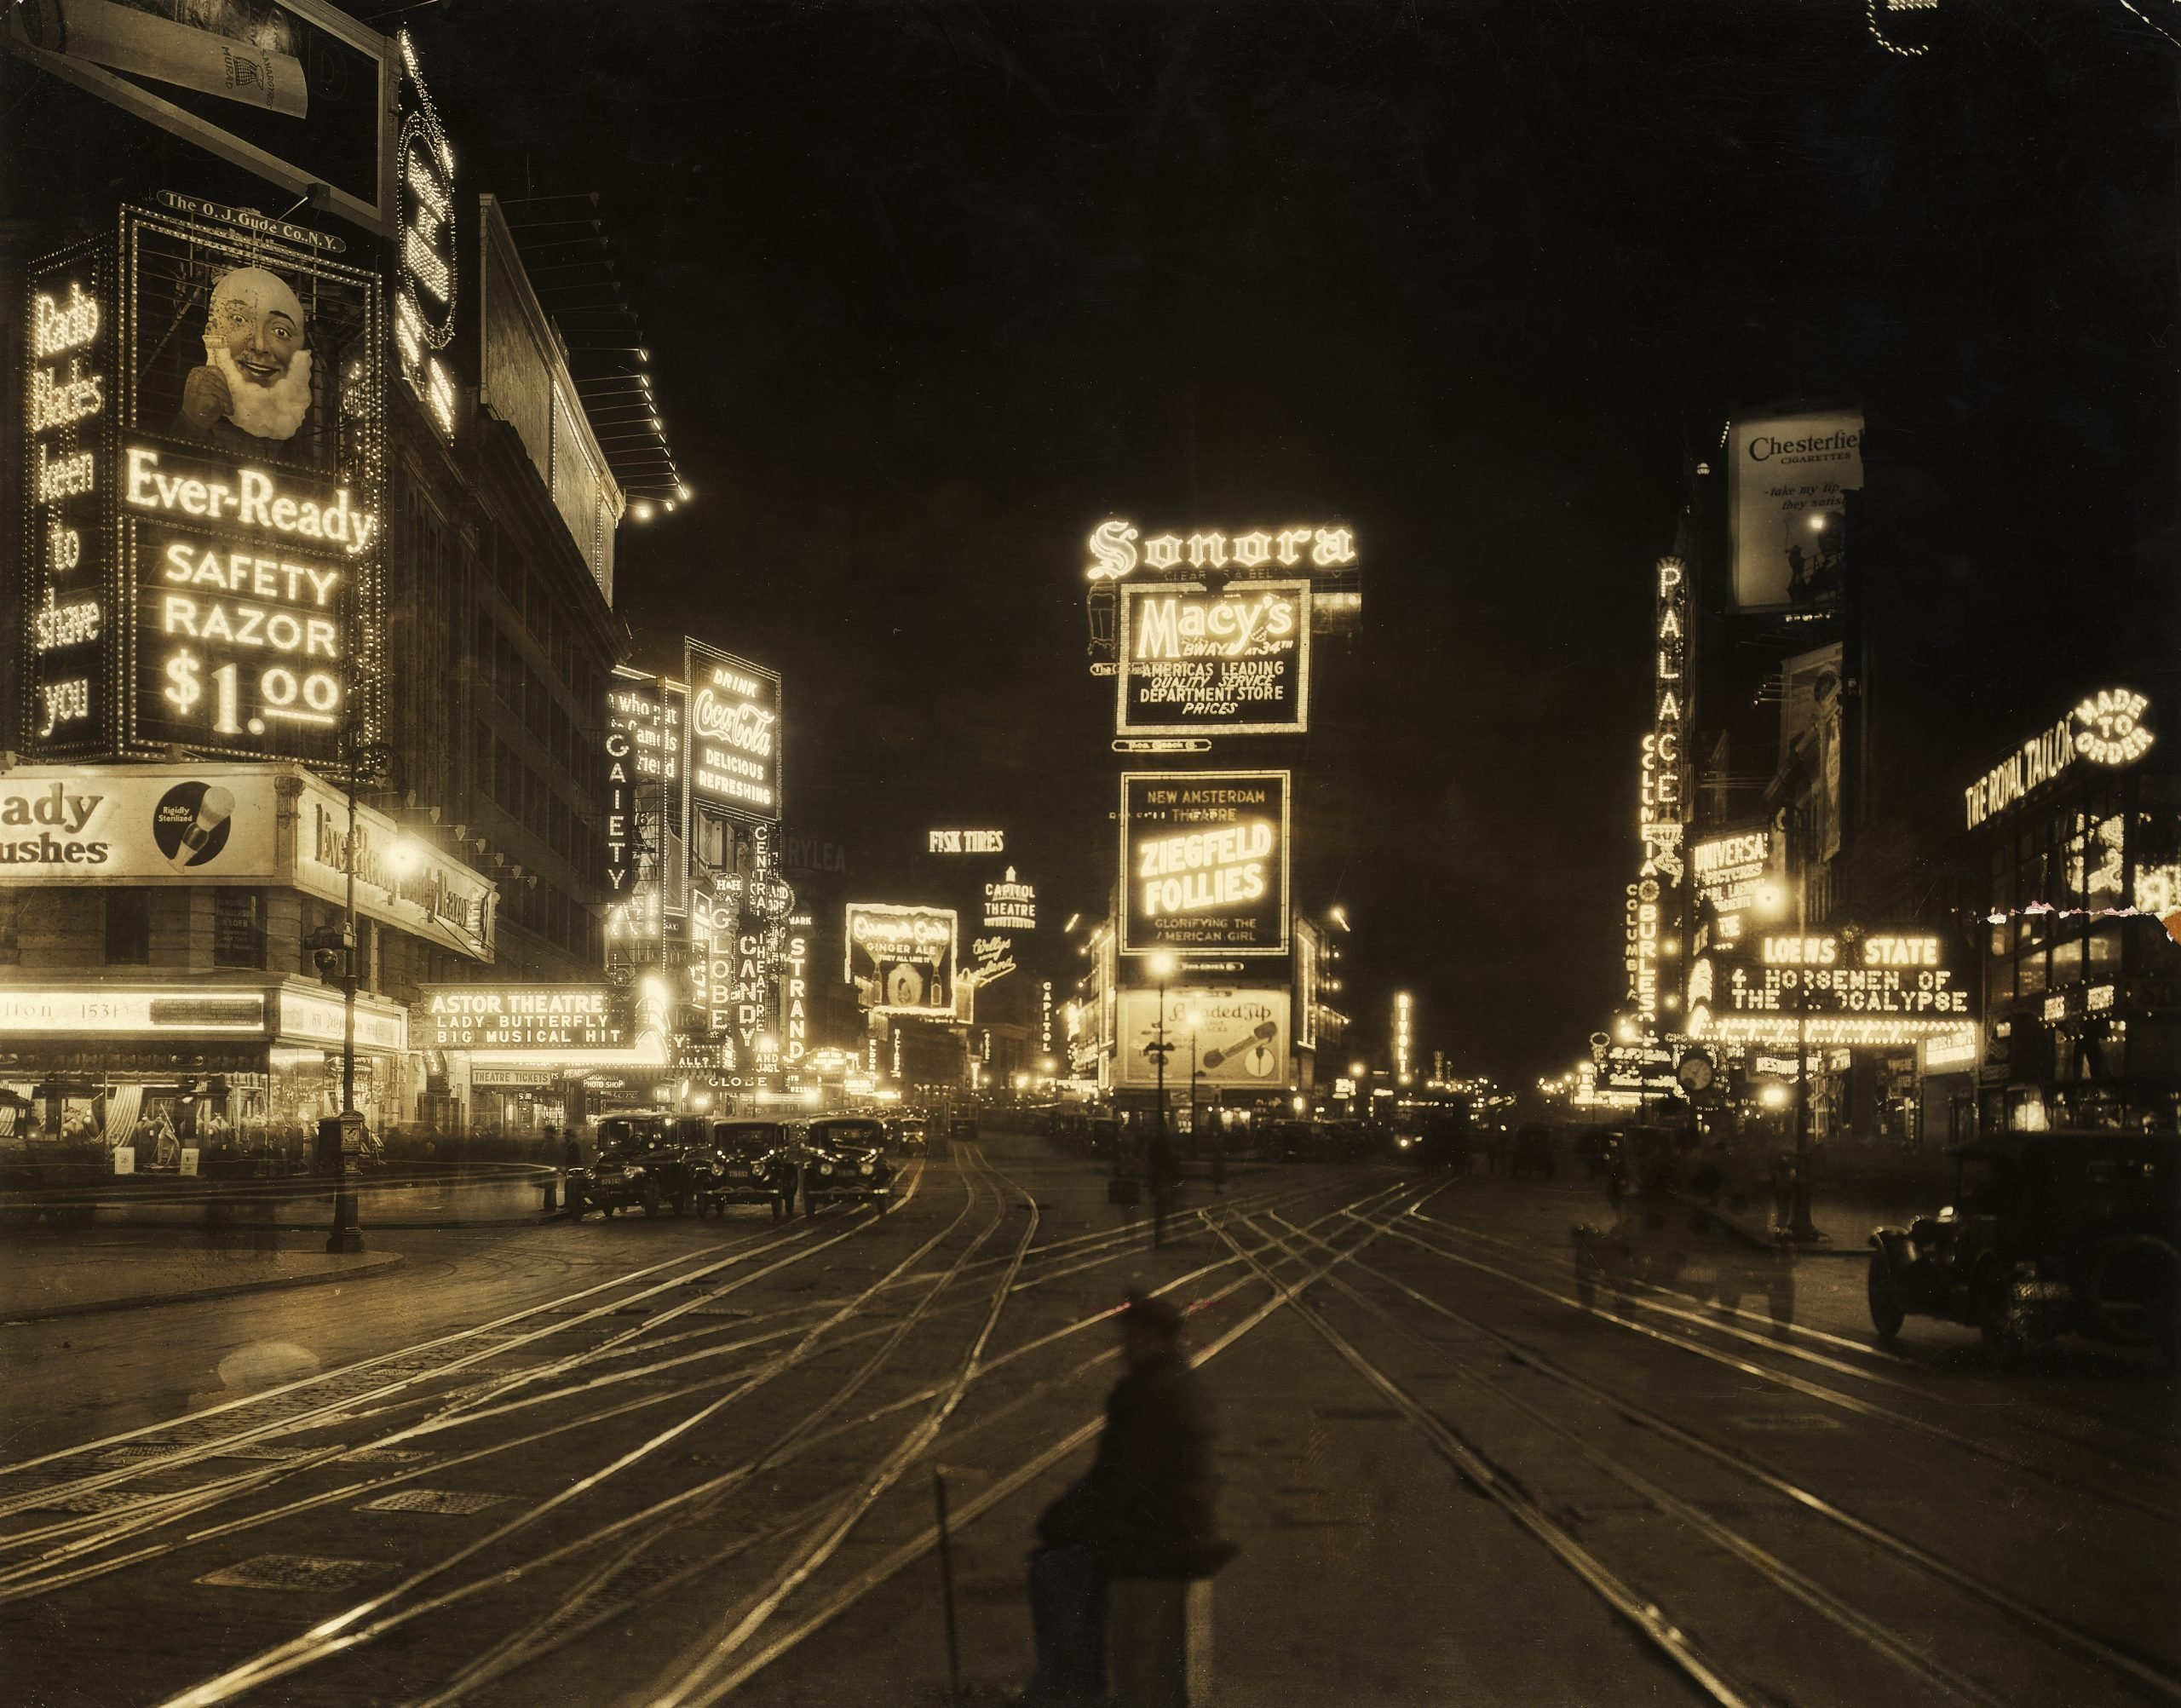 1921: View of the traffic and illuminated advertisements in Times Square at night, seen from 45th Street looking northward, New York City.